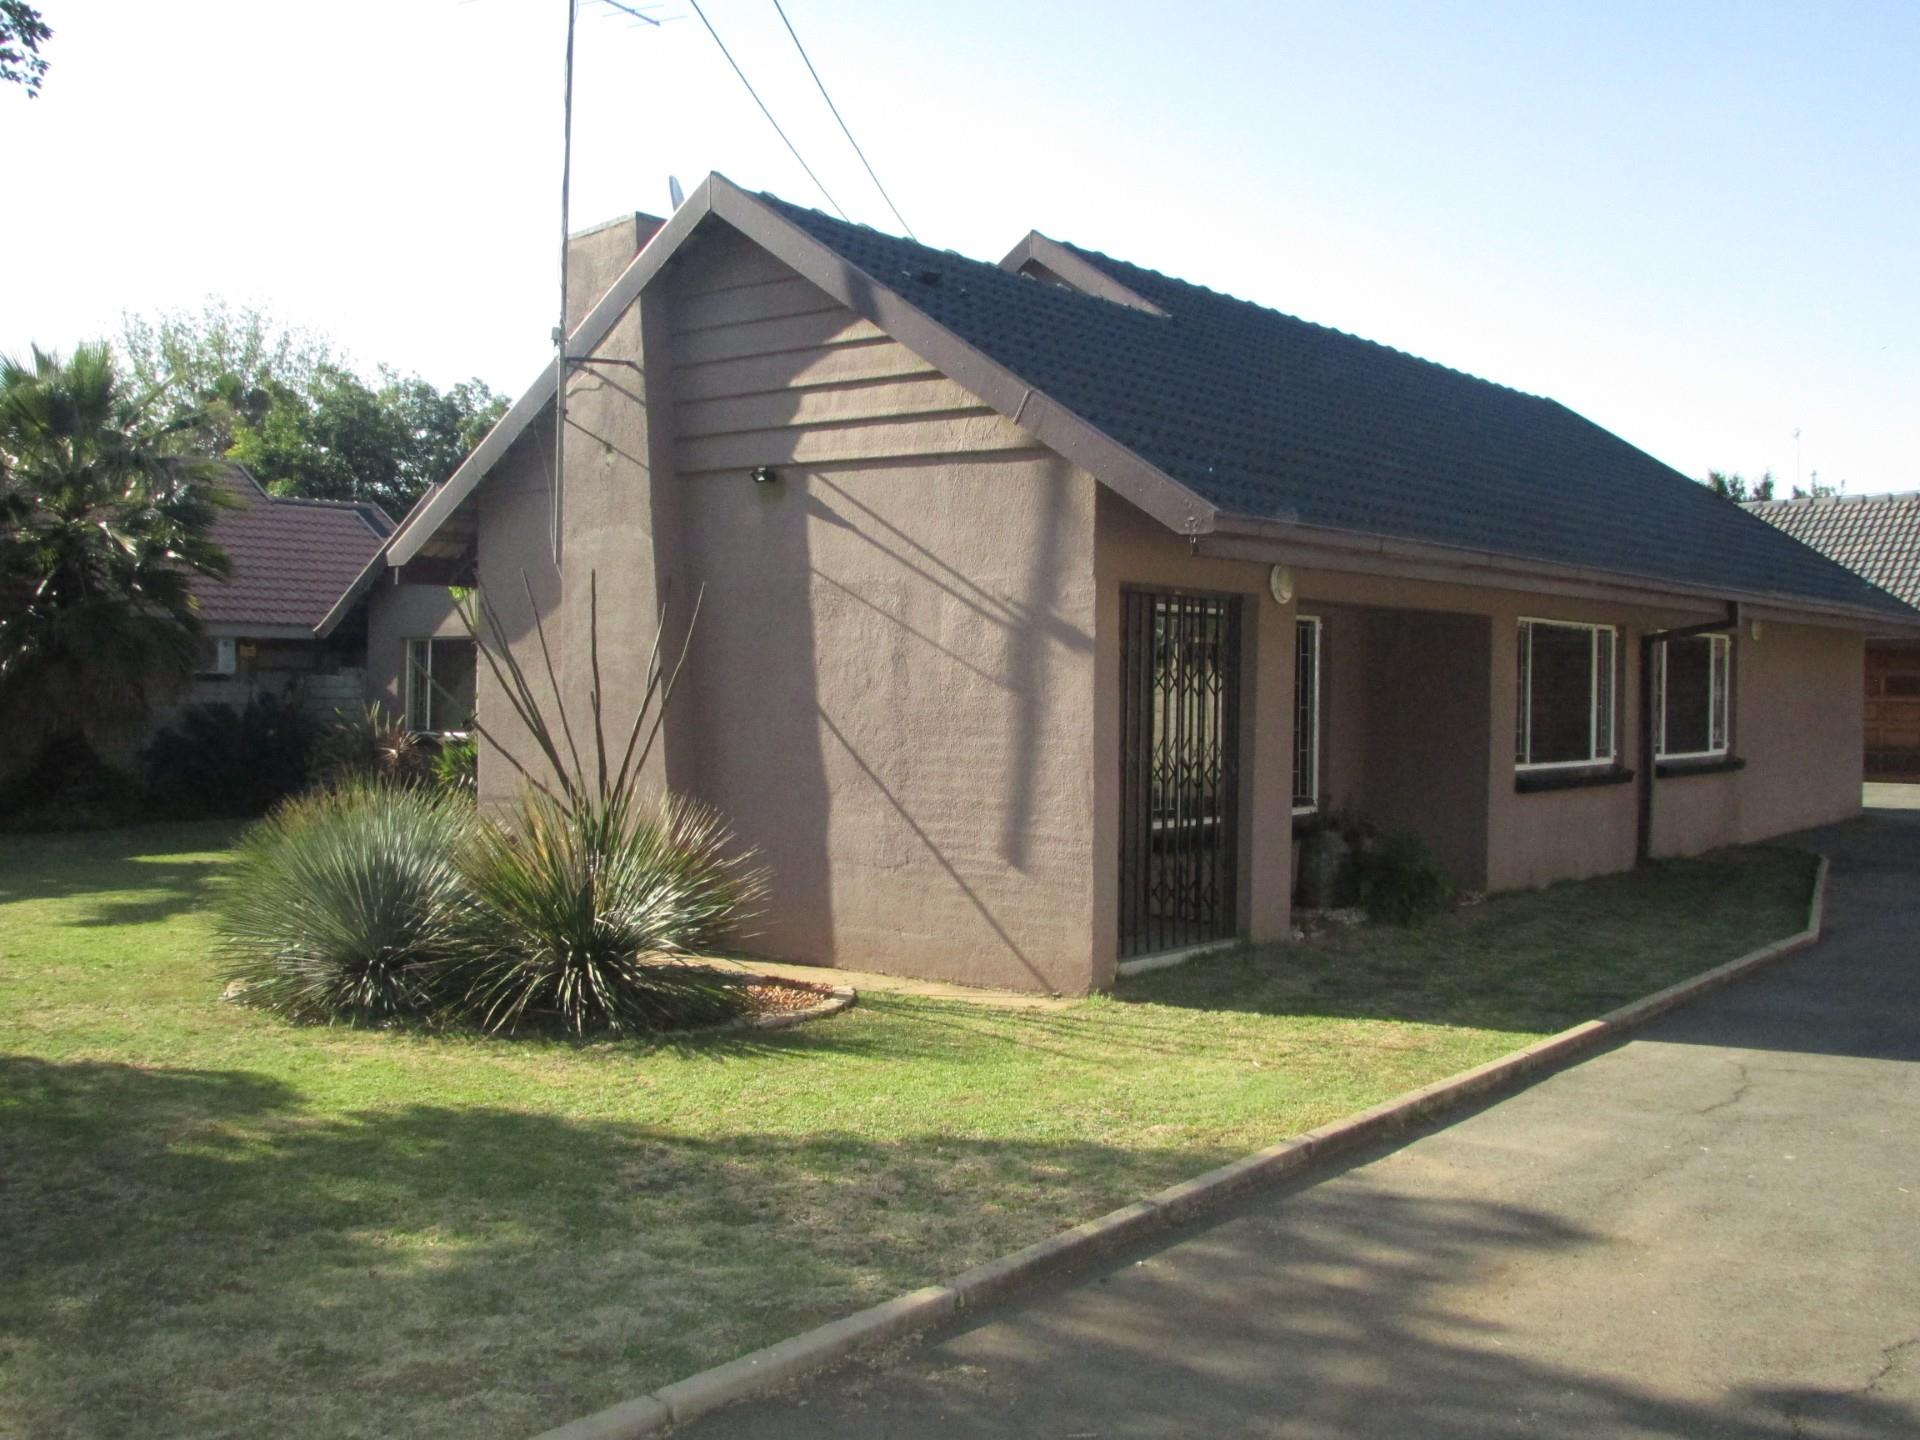 5 Bedroom House For Sale in Risiville